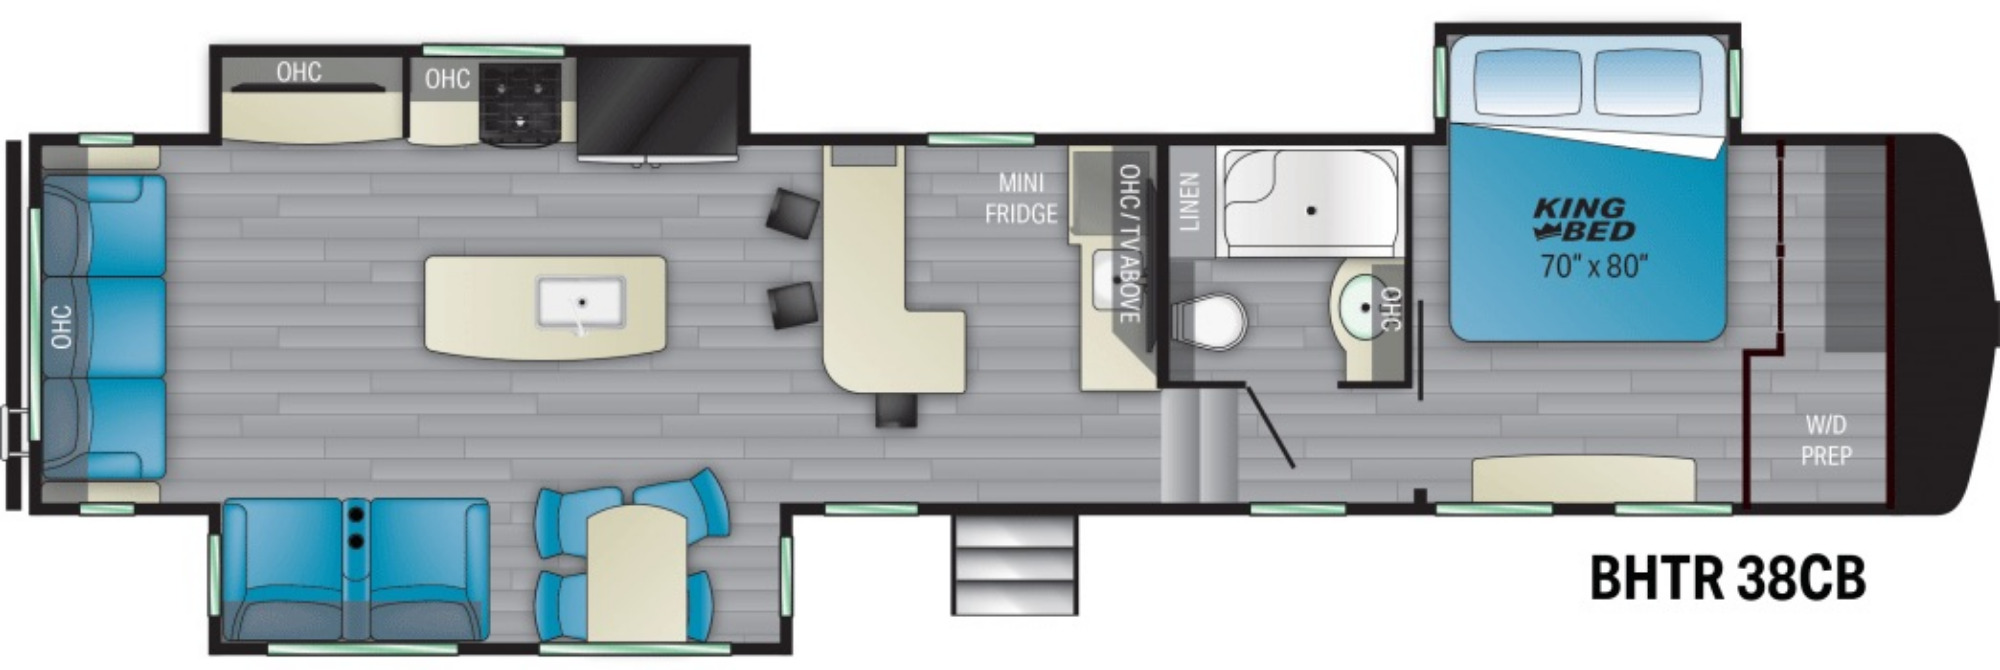 View Floor Plan for 2021 HEARTLAND BIGHORN TRAVELER 38CB